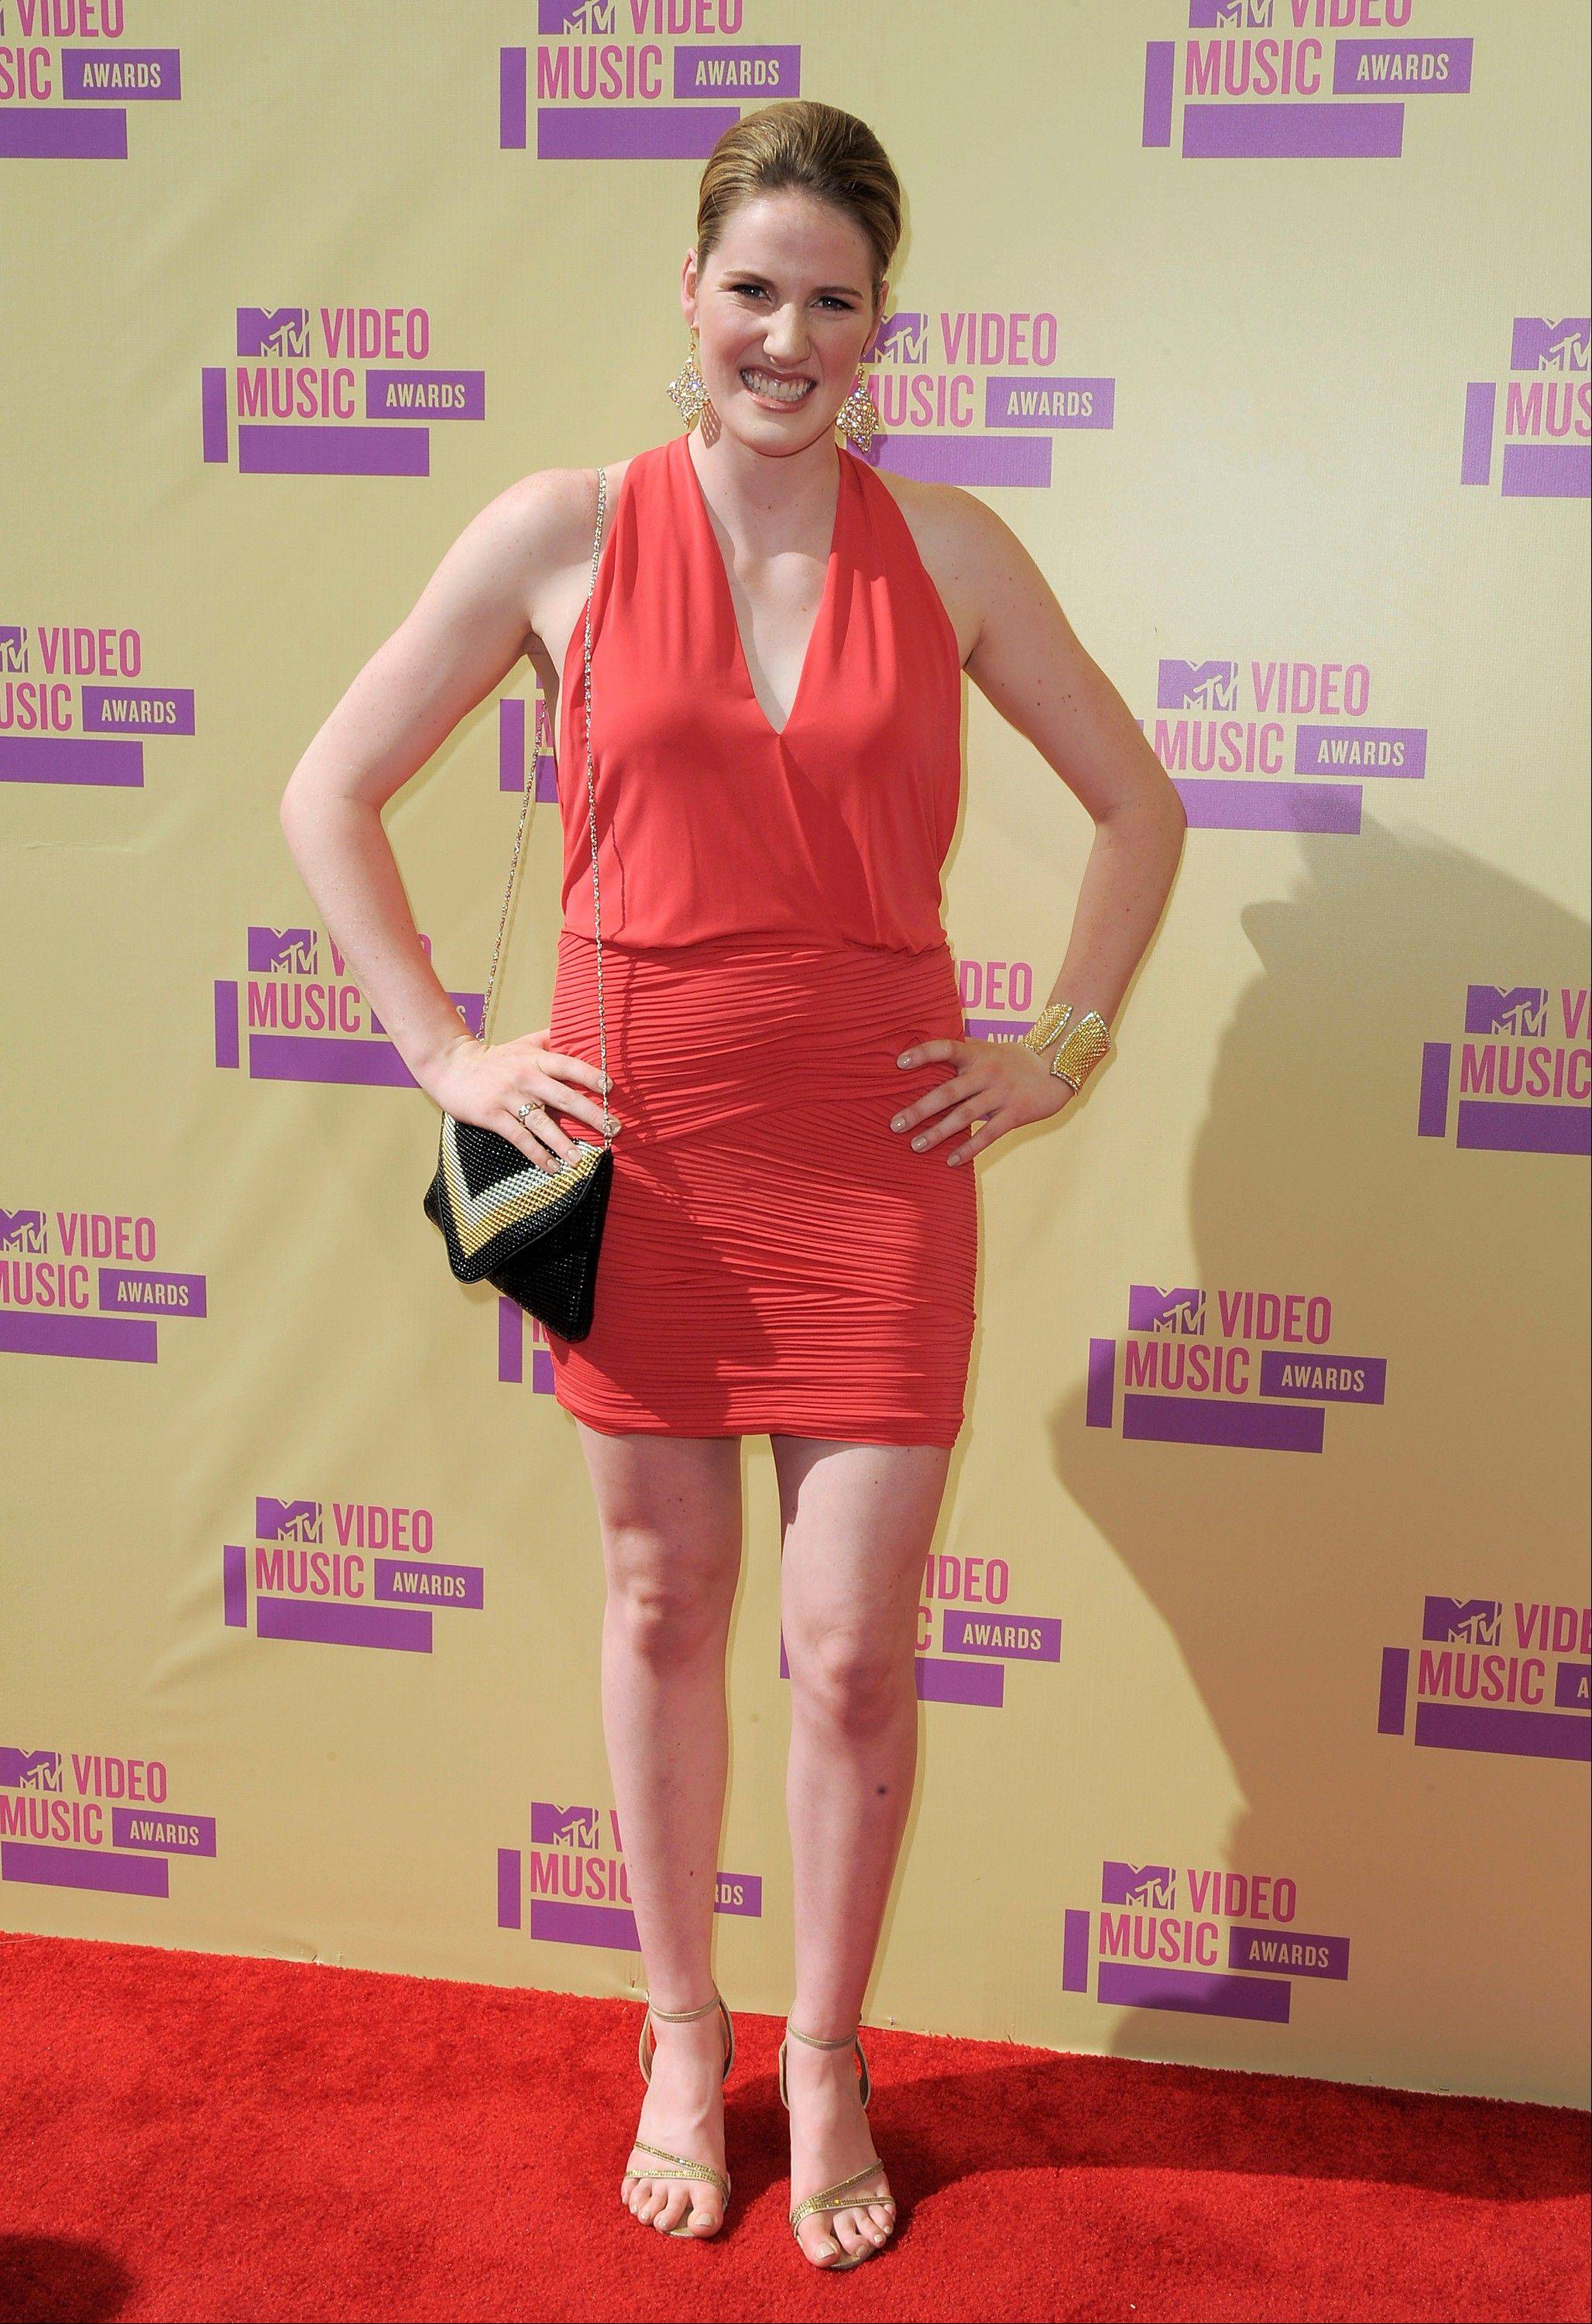 Olympic swimmer Missy Franklin arrives at the MTV Video Music Awards on Thursday, Sept. 6, 2012, in Los Angeles.